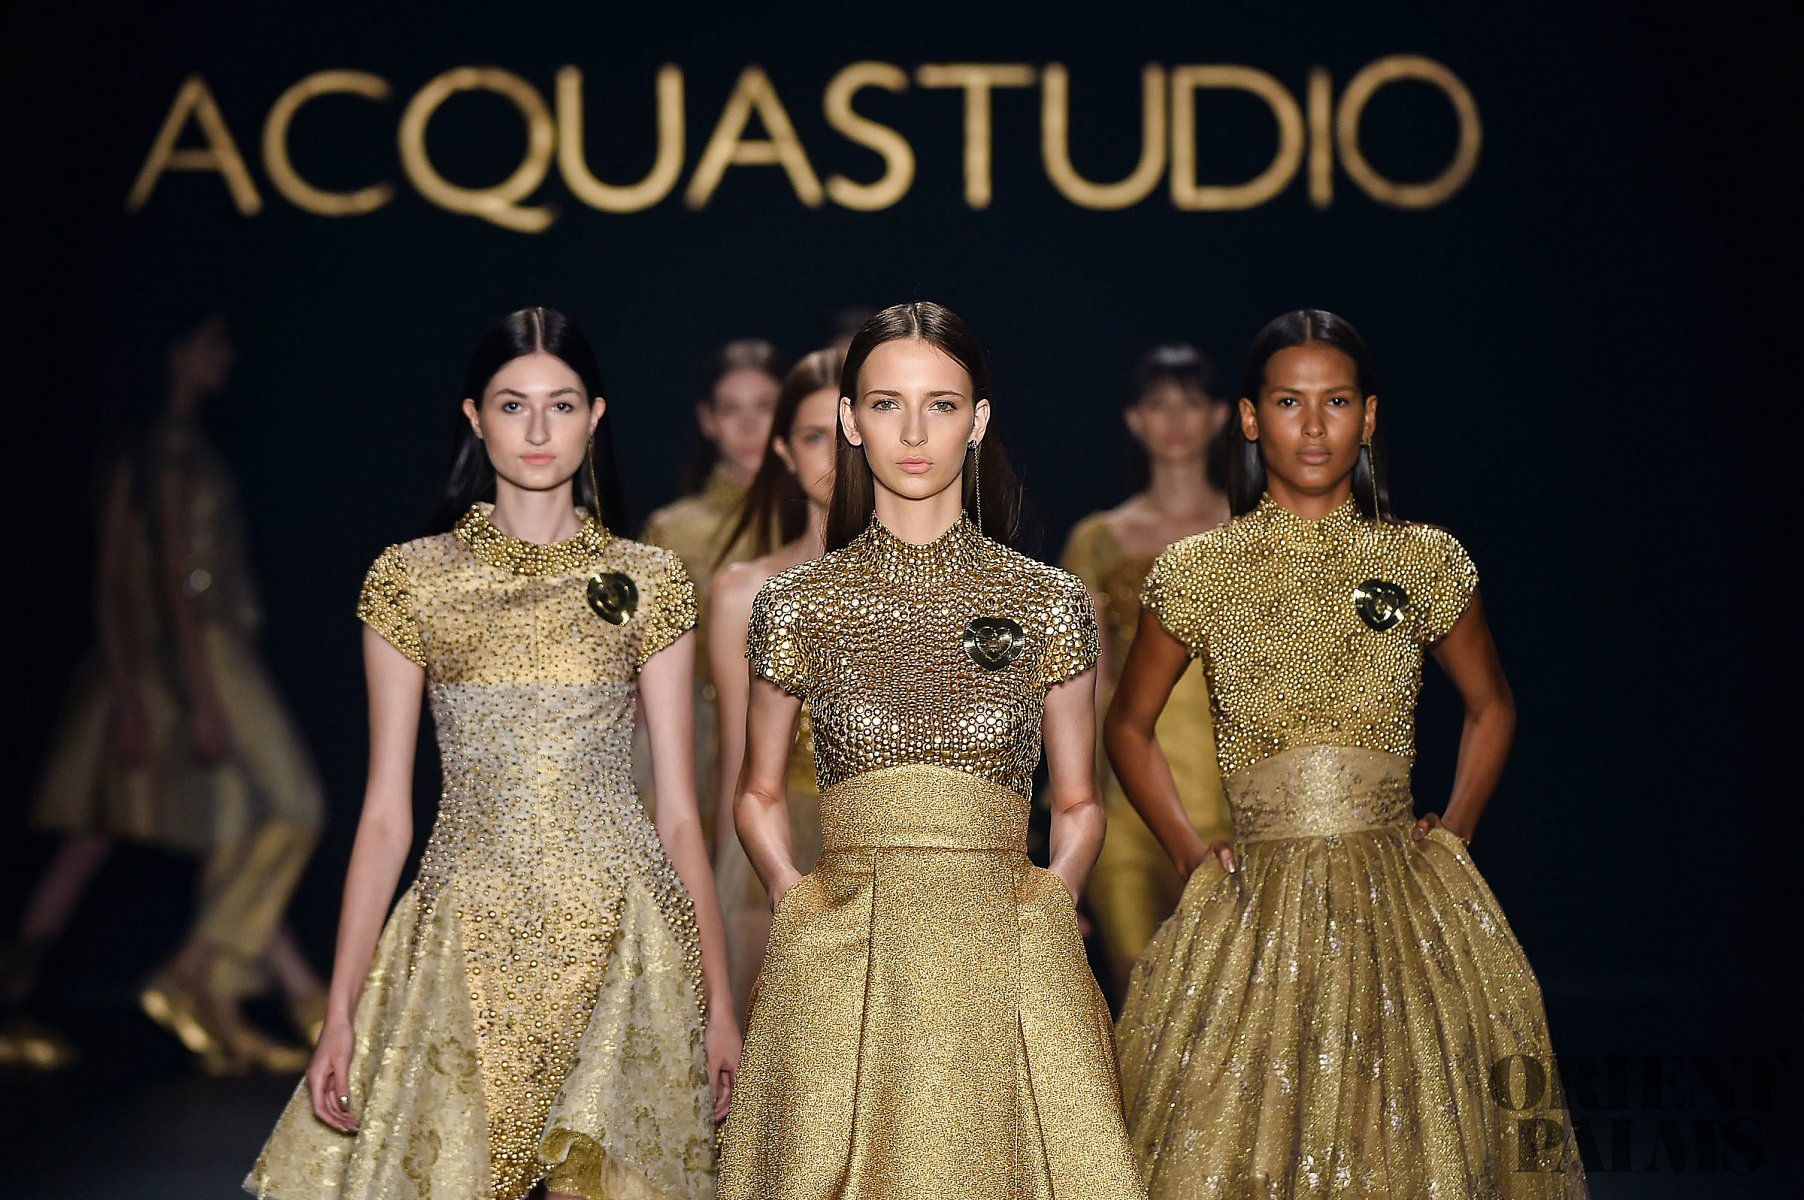 Acquastudio Herfst/Winter 2015-2016 - Confectie - 11